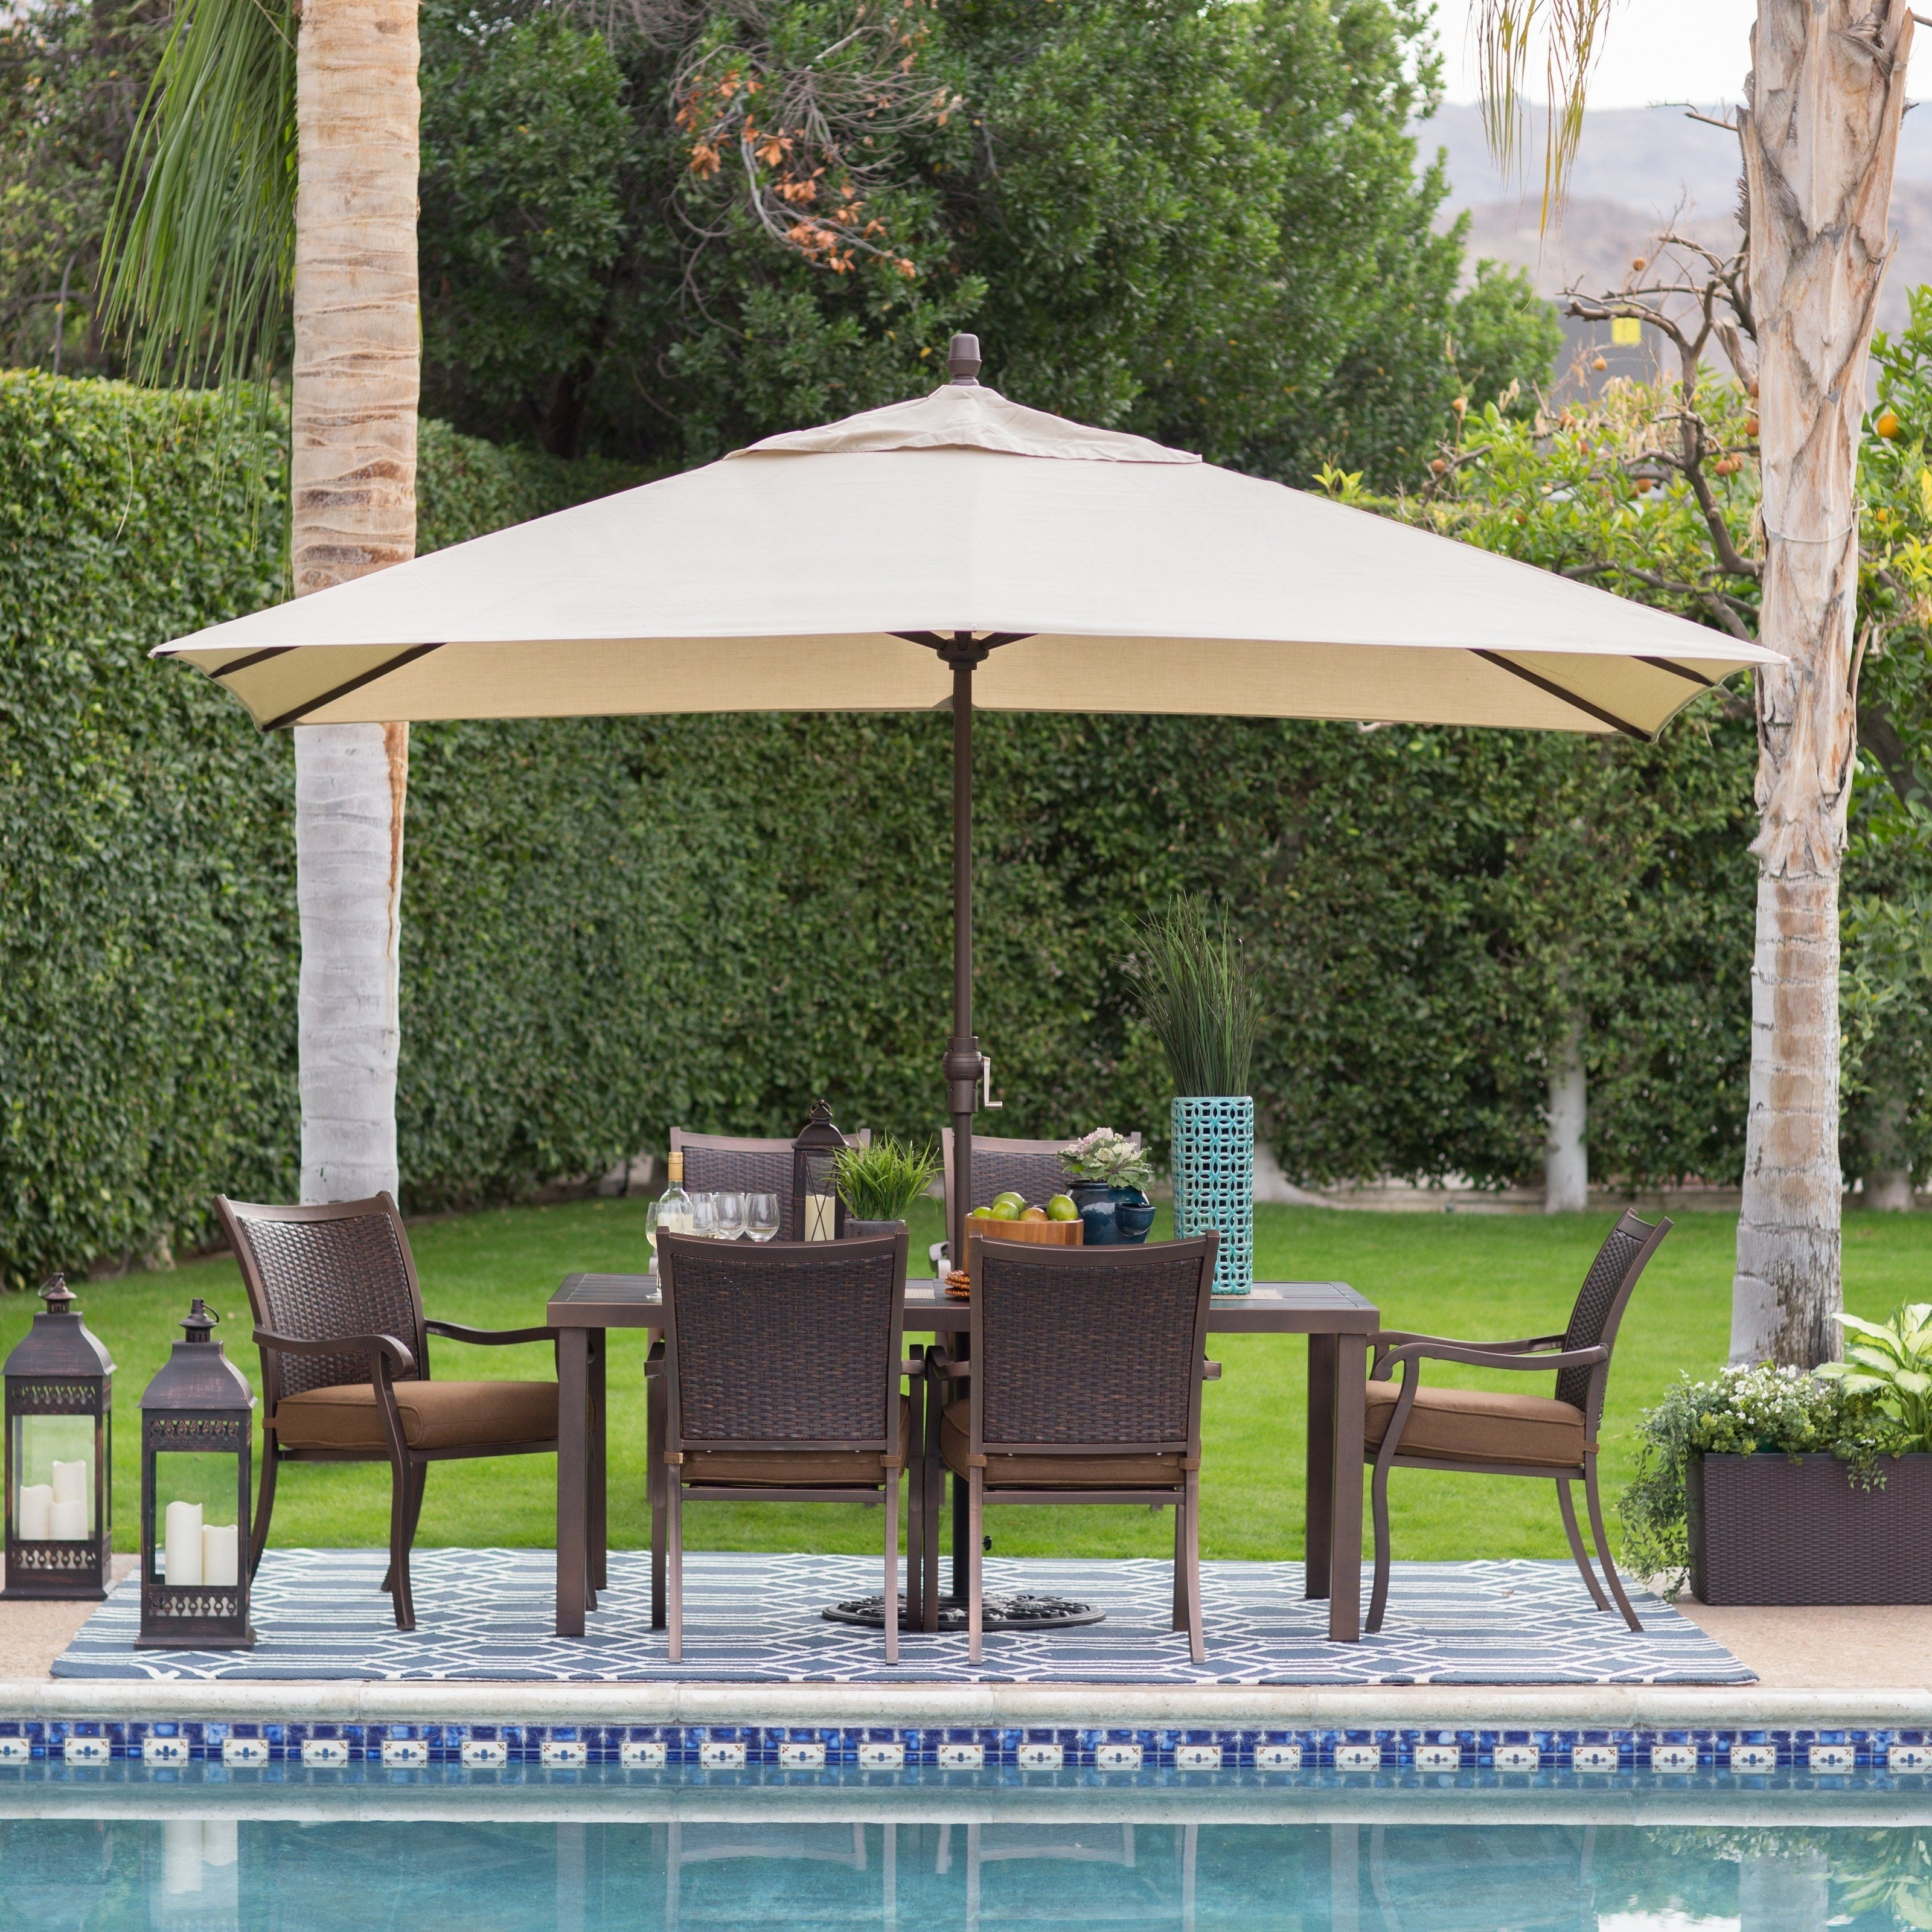 Most Recently Released Walmart Umbrellas Patio In 17 Beautiful Walmart Umbrellas Patio – Patio Furniture (View 5 of 20)